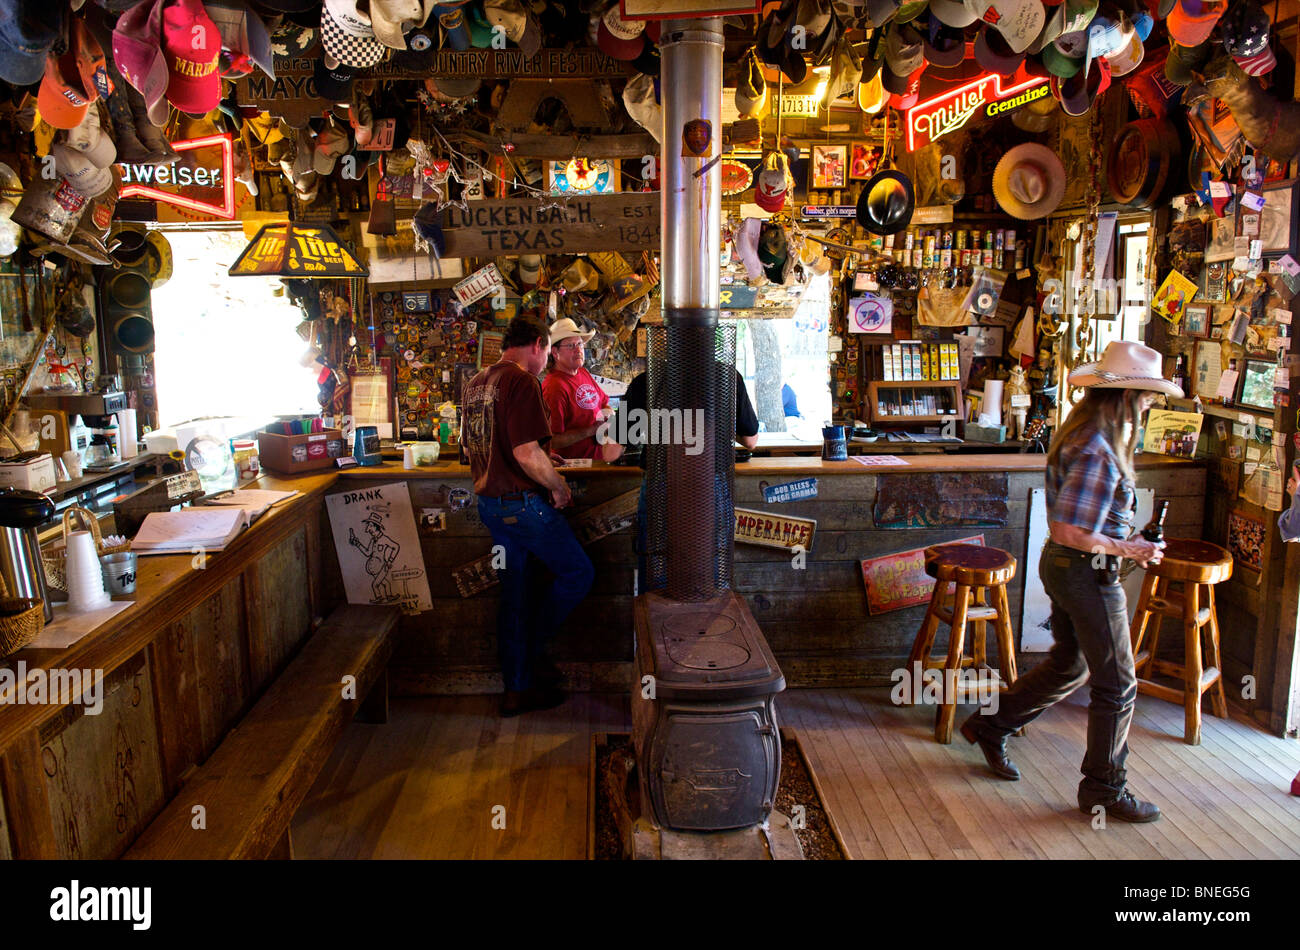 Visitors In The Luckenbach Bar Hill Country Texas, North America, USA Stock Photo